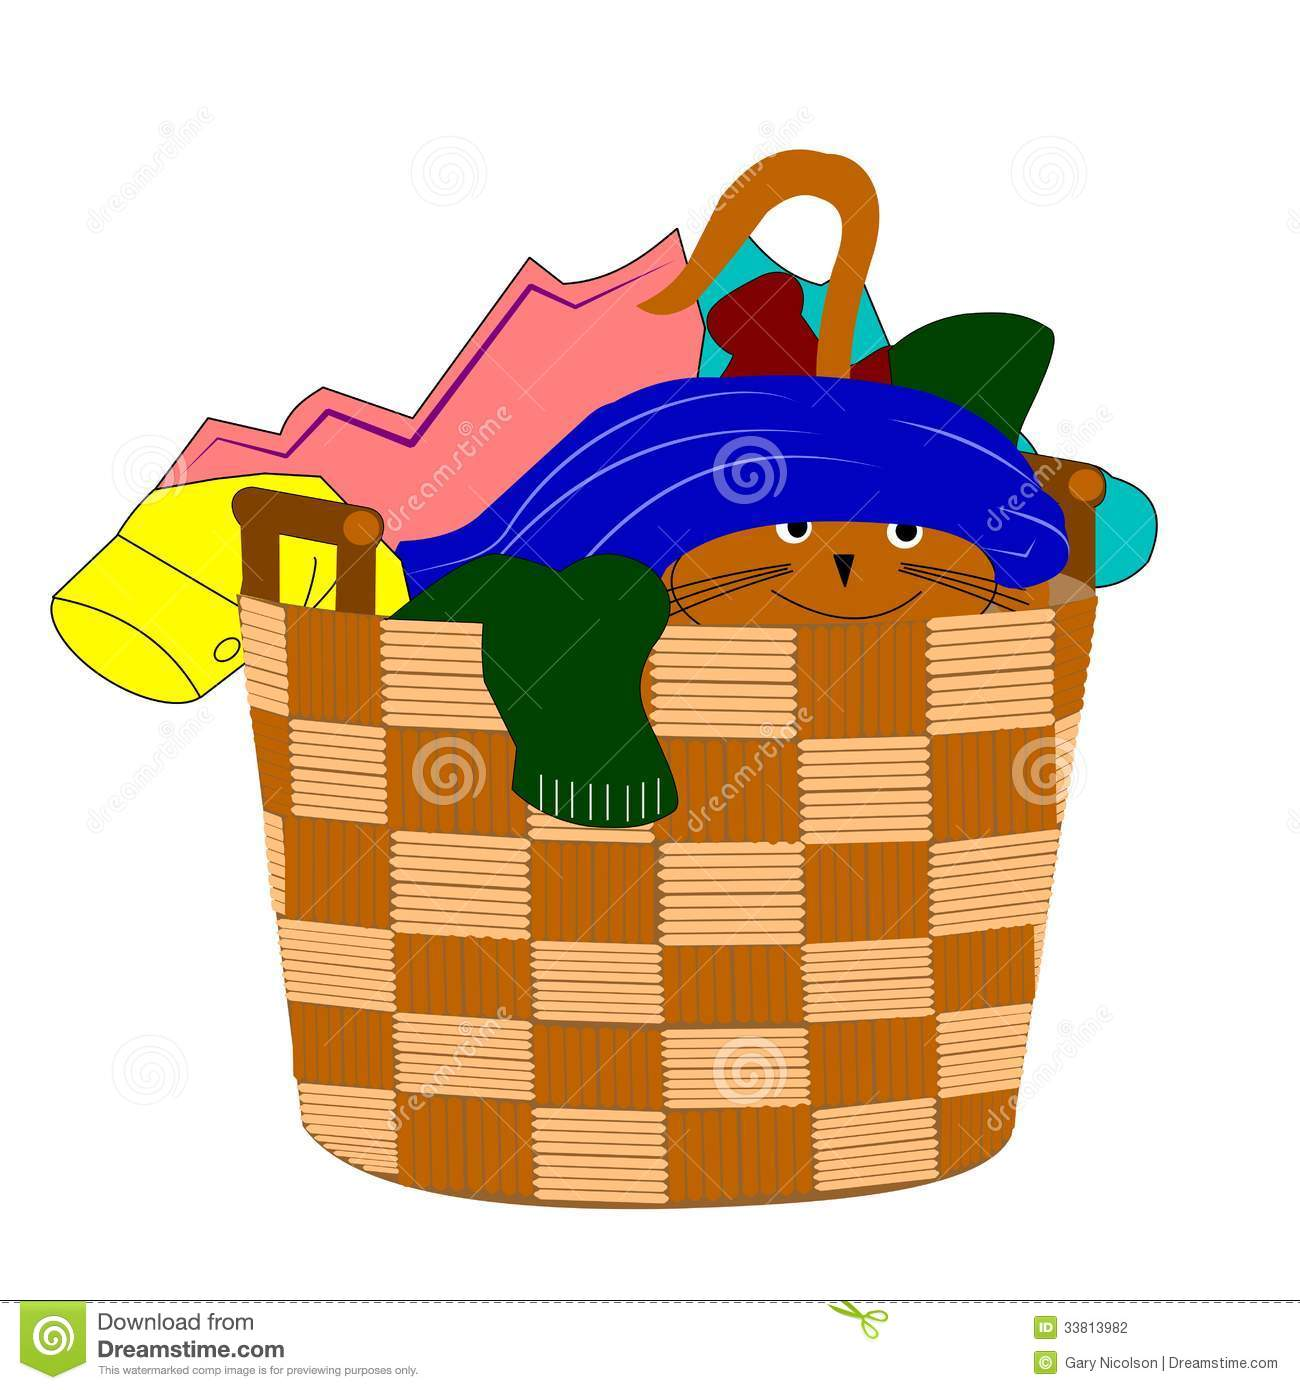 cat hiding in laundry stock vector illustration of basket laundry basket with clothes vector Move in Day Vector